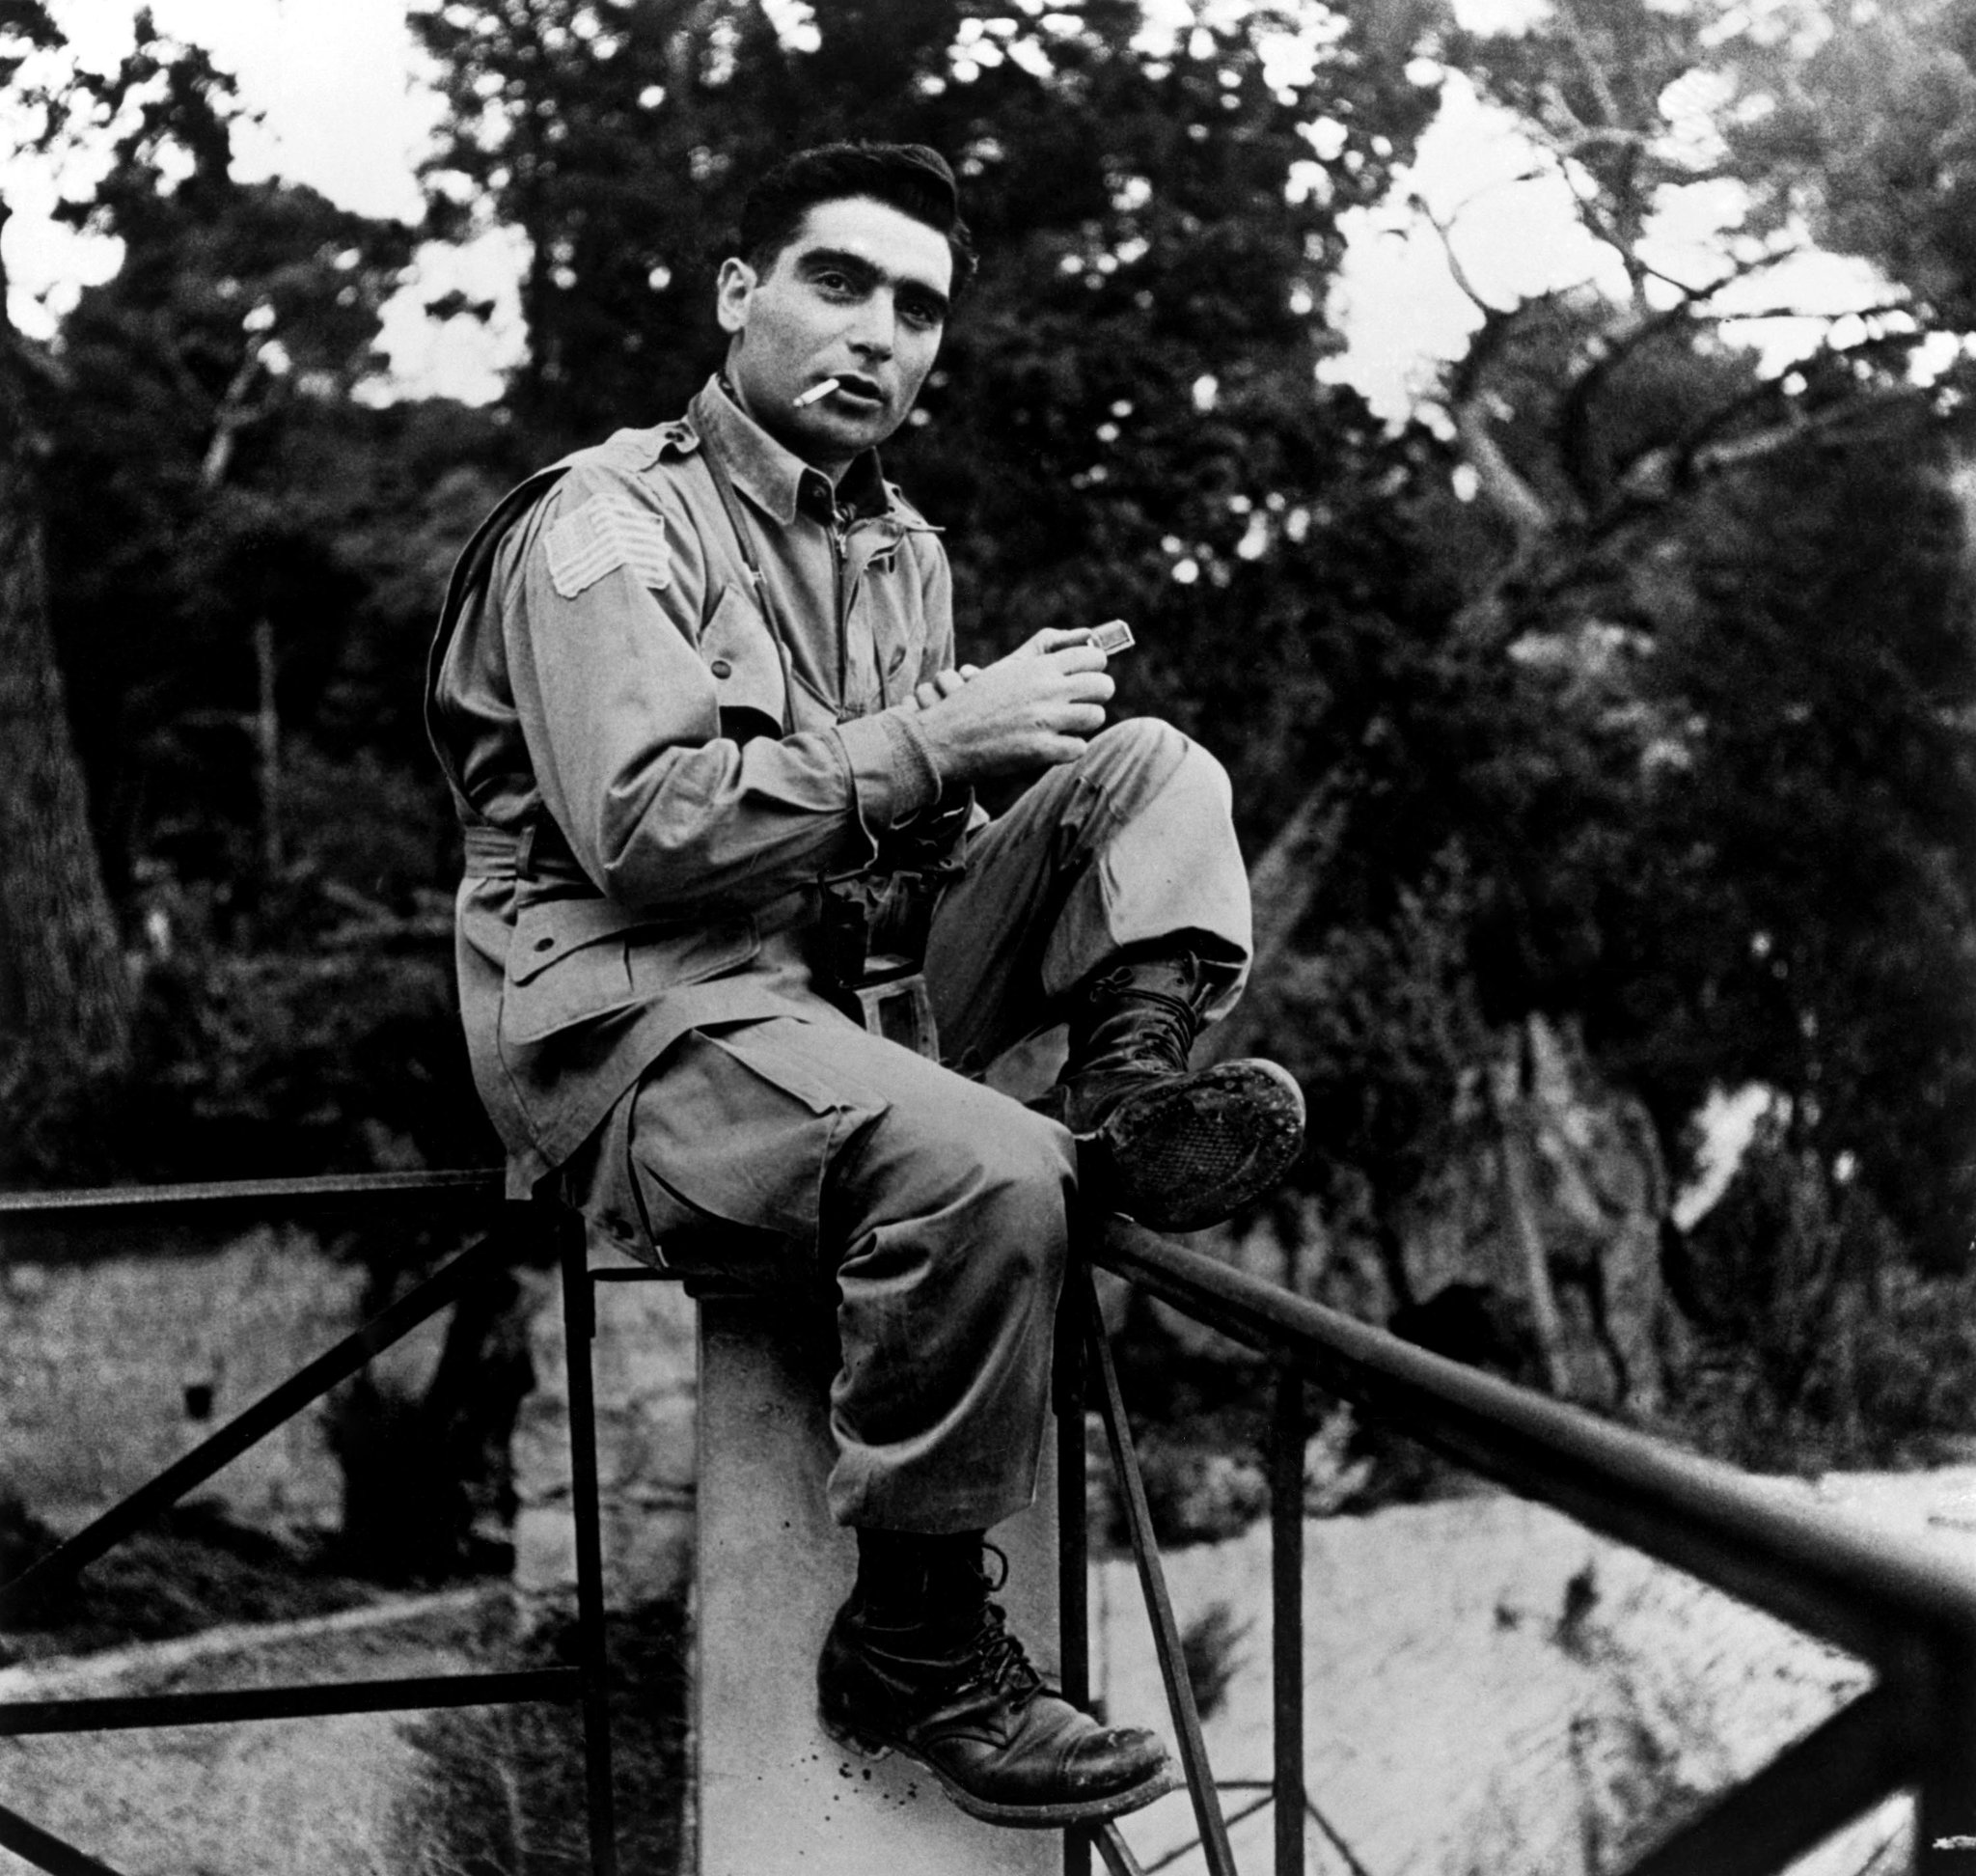 Today marks 65 years since the death of Magnum co-founder Robert Capa on May 25, 1954, during the First Indochina War.  © George Rodger/Magnum Photos https://t.co/gIMLeifQs8